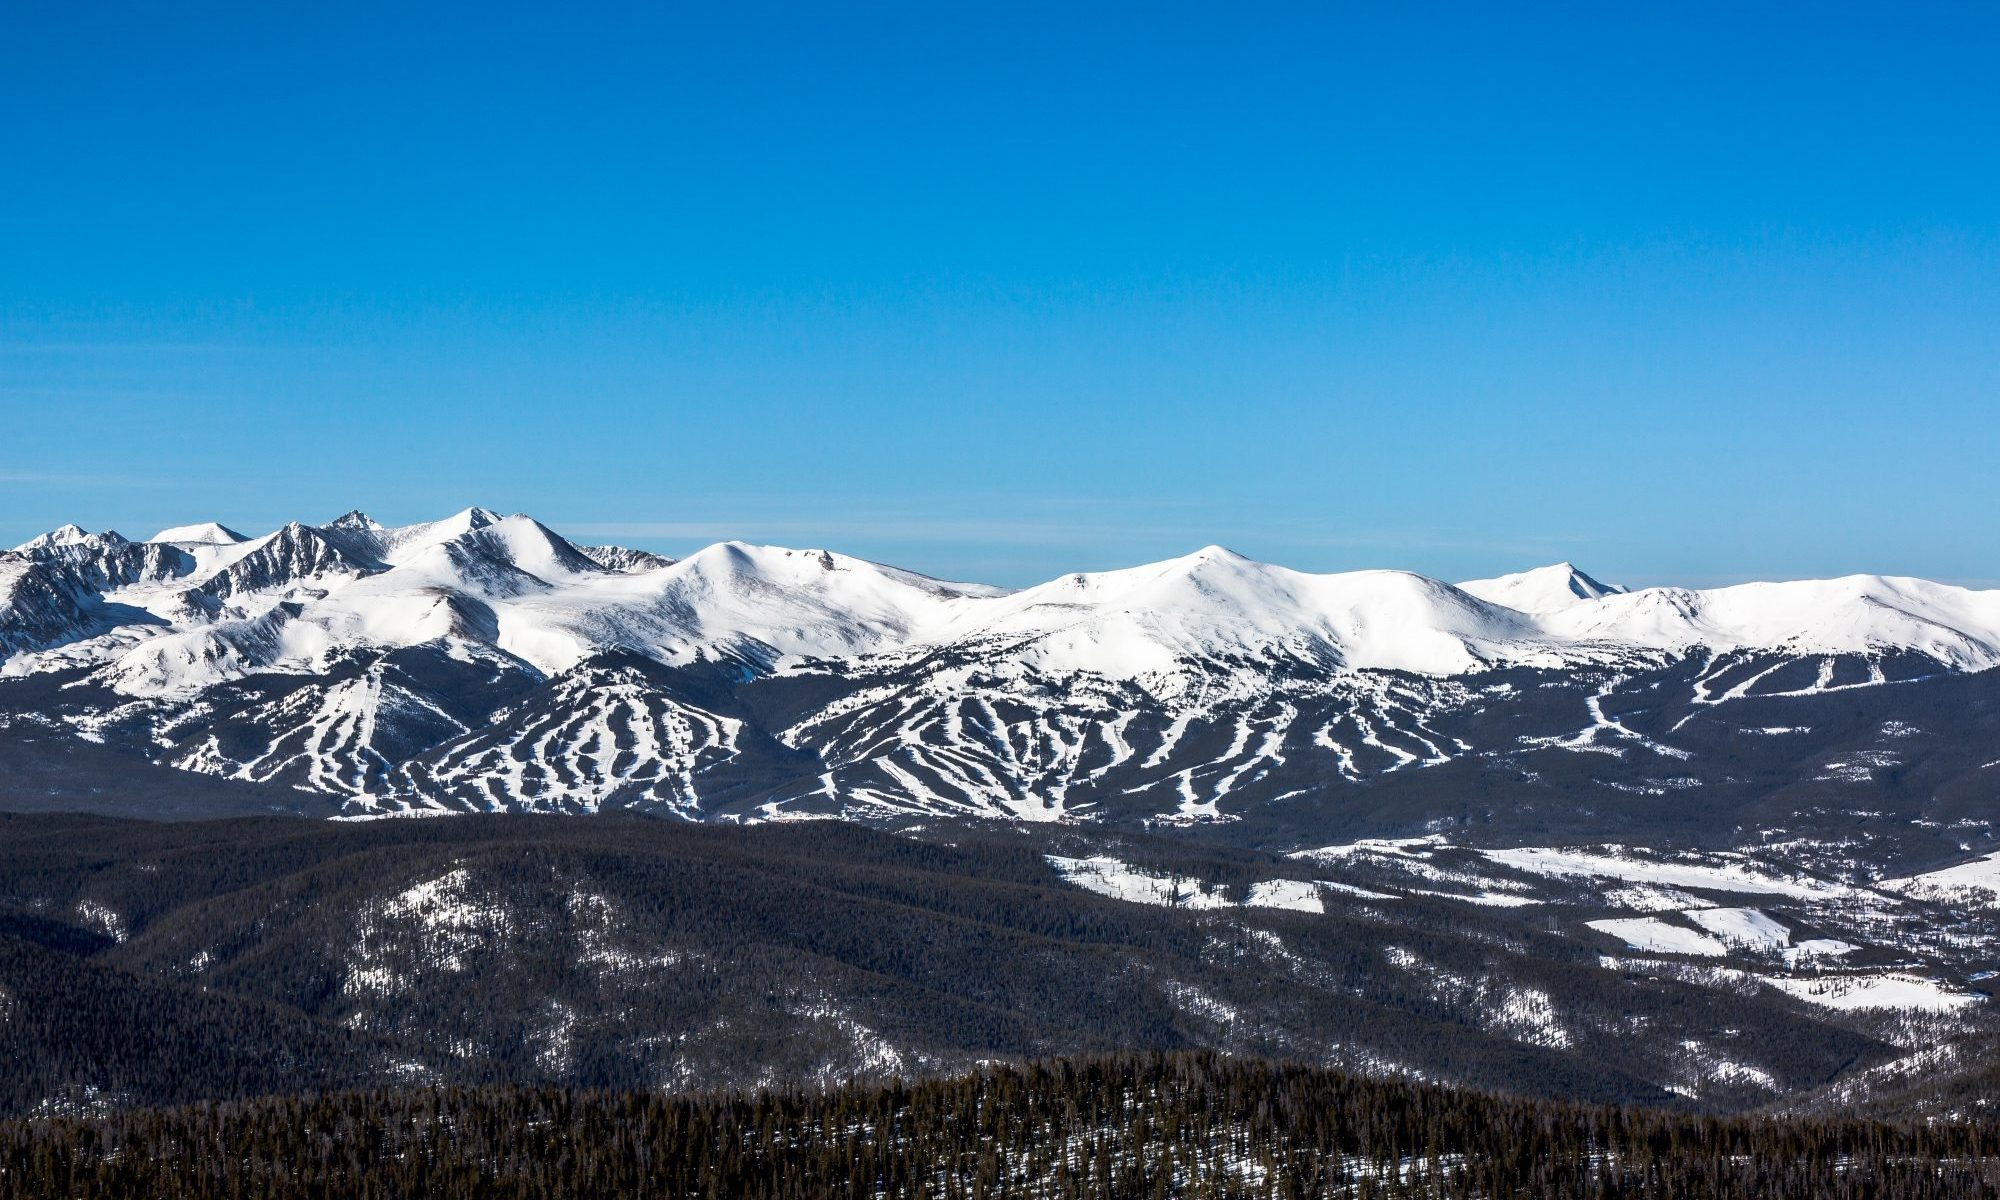 Breckenridge - Peaks 6 to 10- Wideview. Photo by Brent Clark- Breckenridge Ski Resort. Vail Resorts. Breckenridge Ski Resort Announces Plans to Regularly Extend Winter Seasons through Memorial Day, Beginning this Spring.